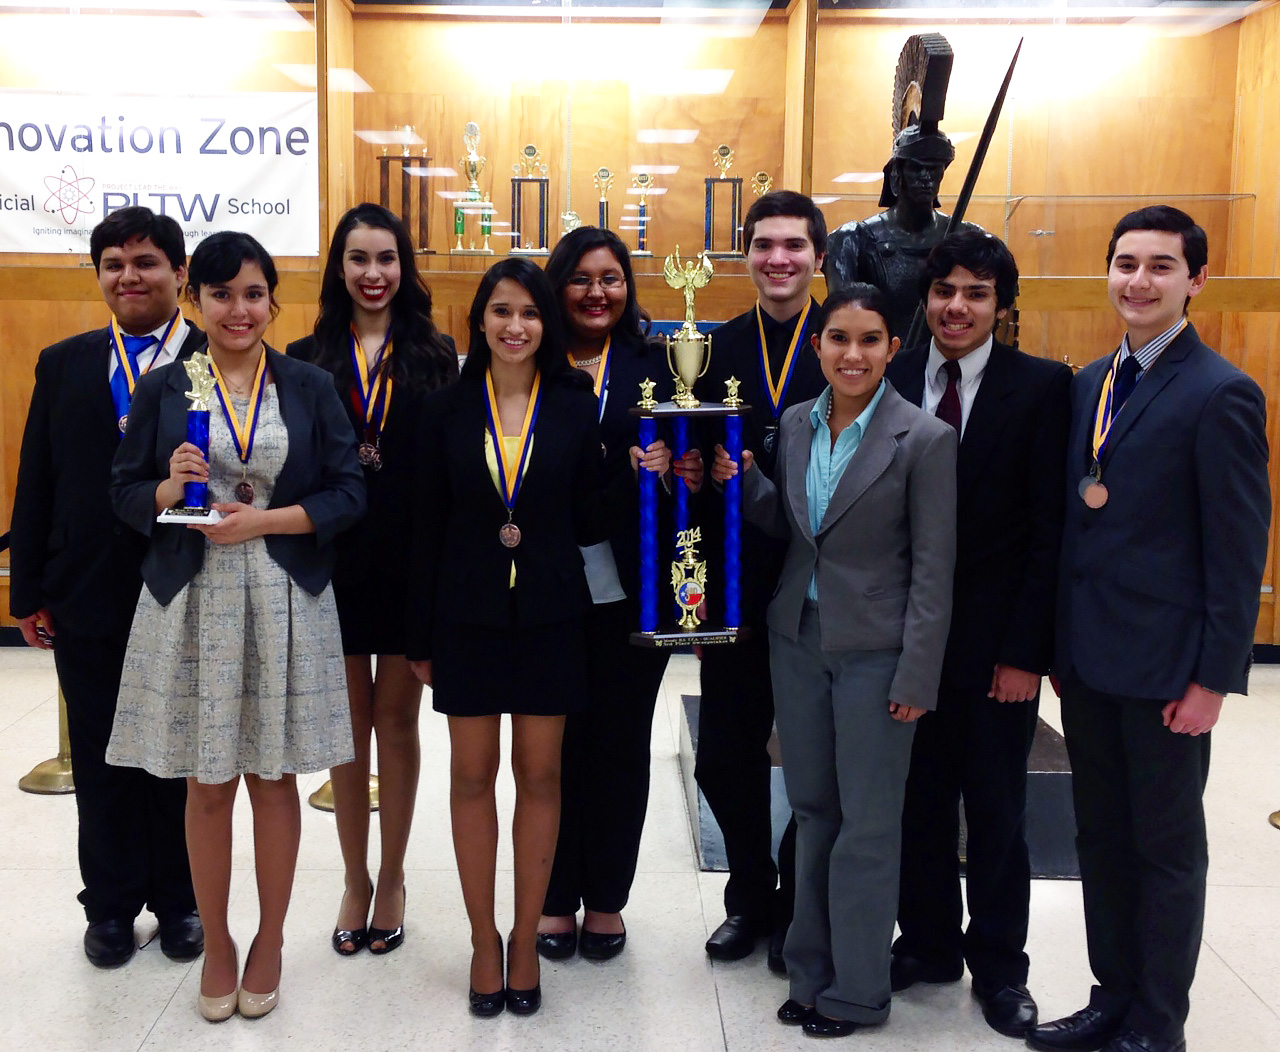 HHS adds sweepstakes trophy, 2 state qualifications to successful season